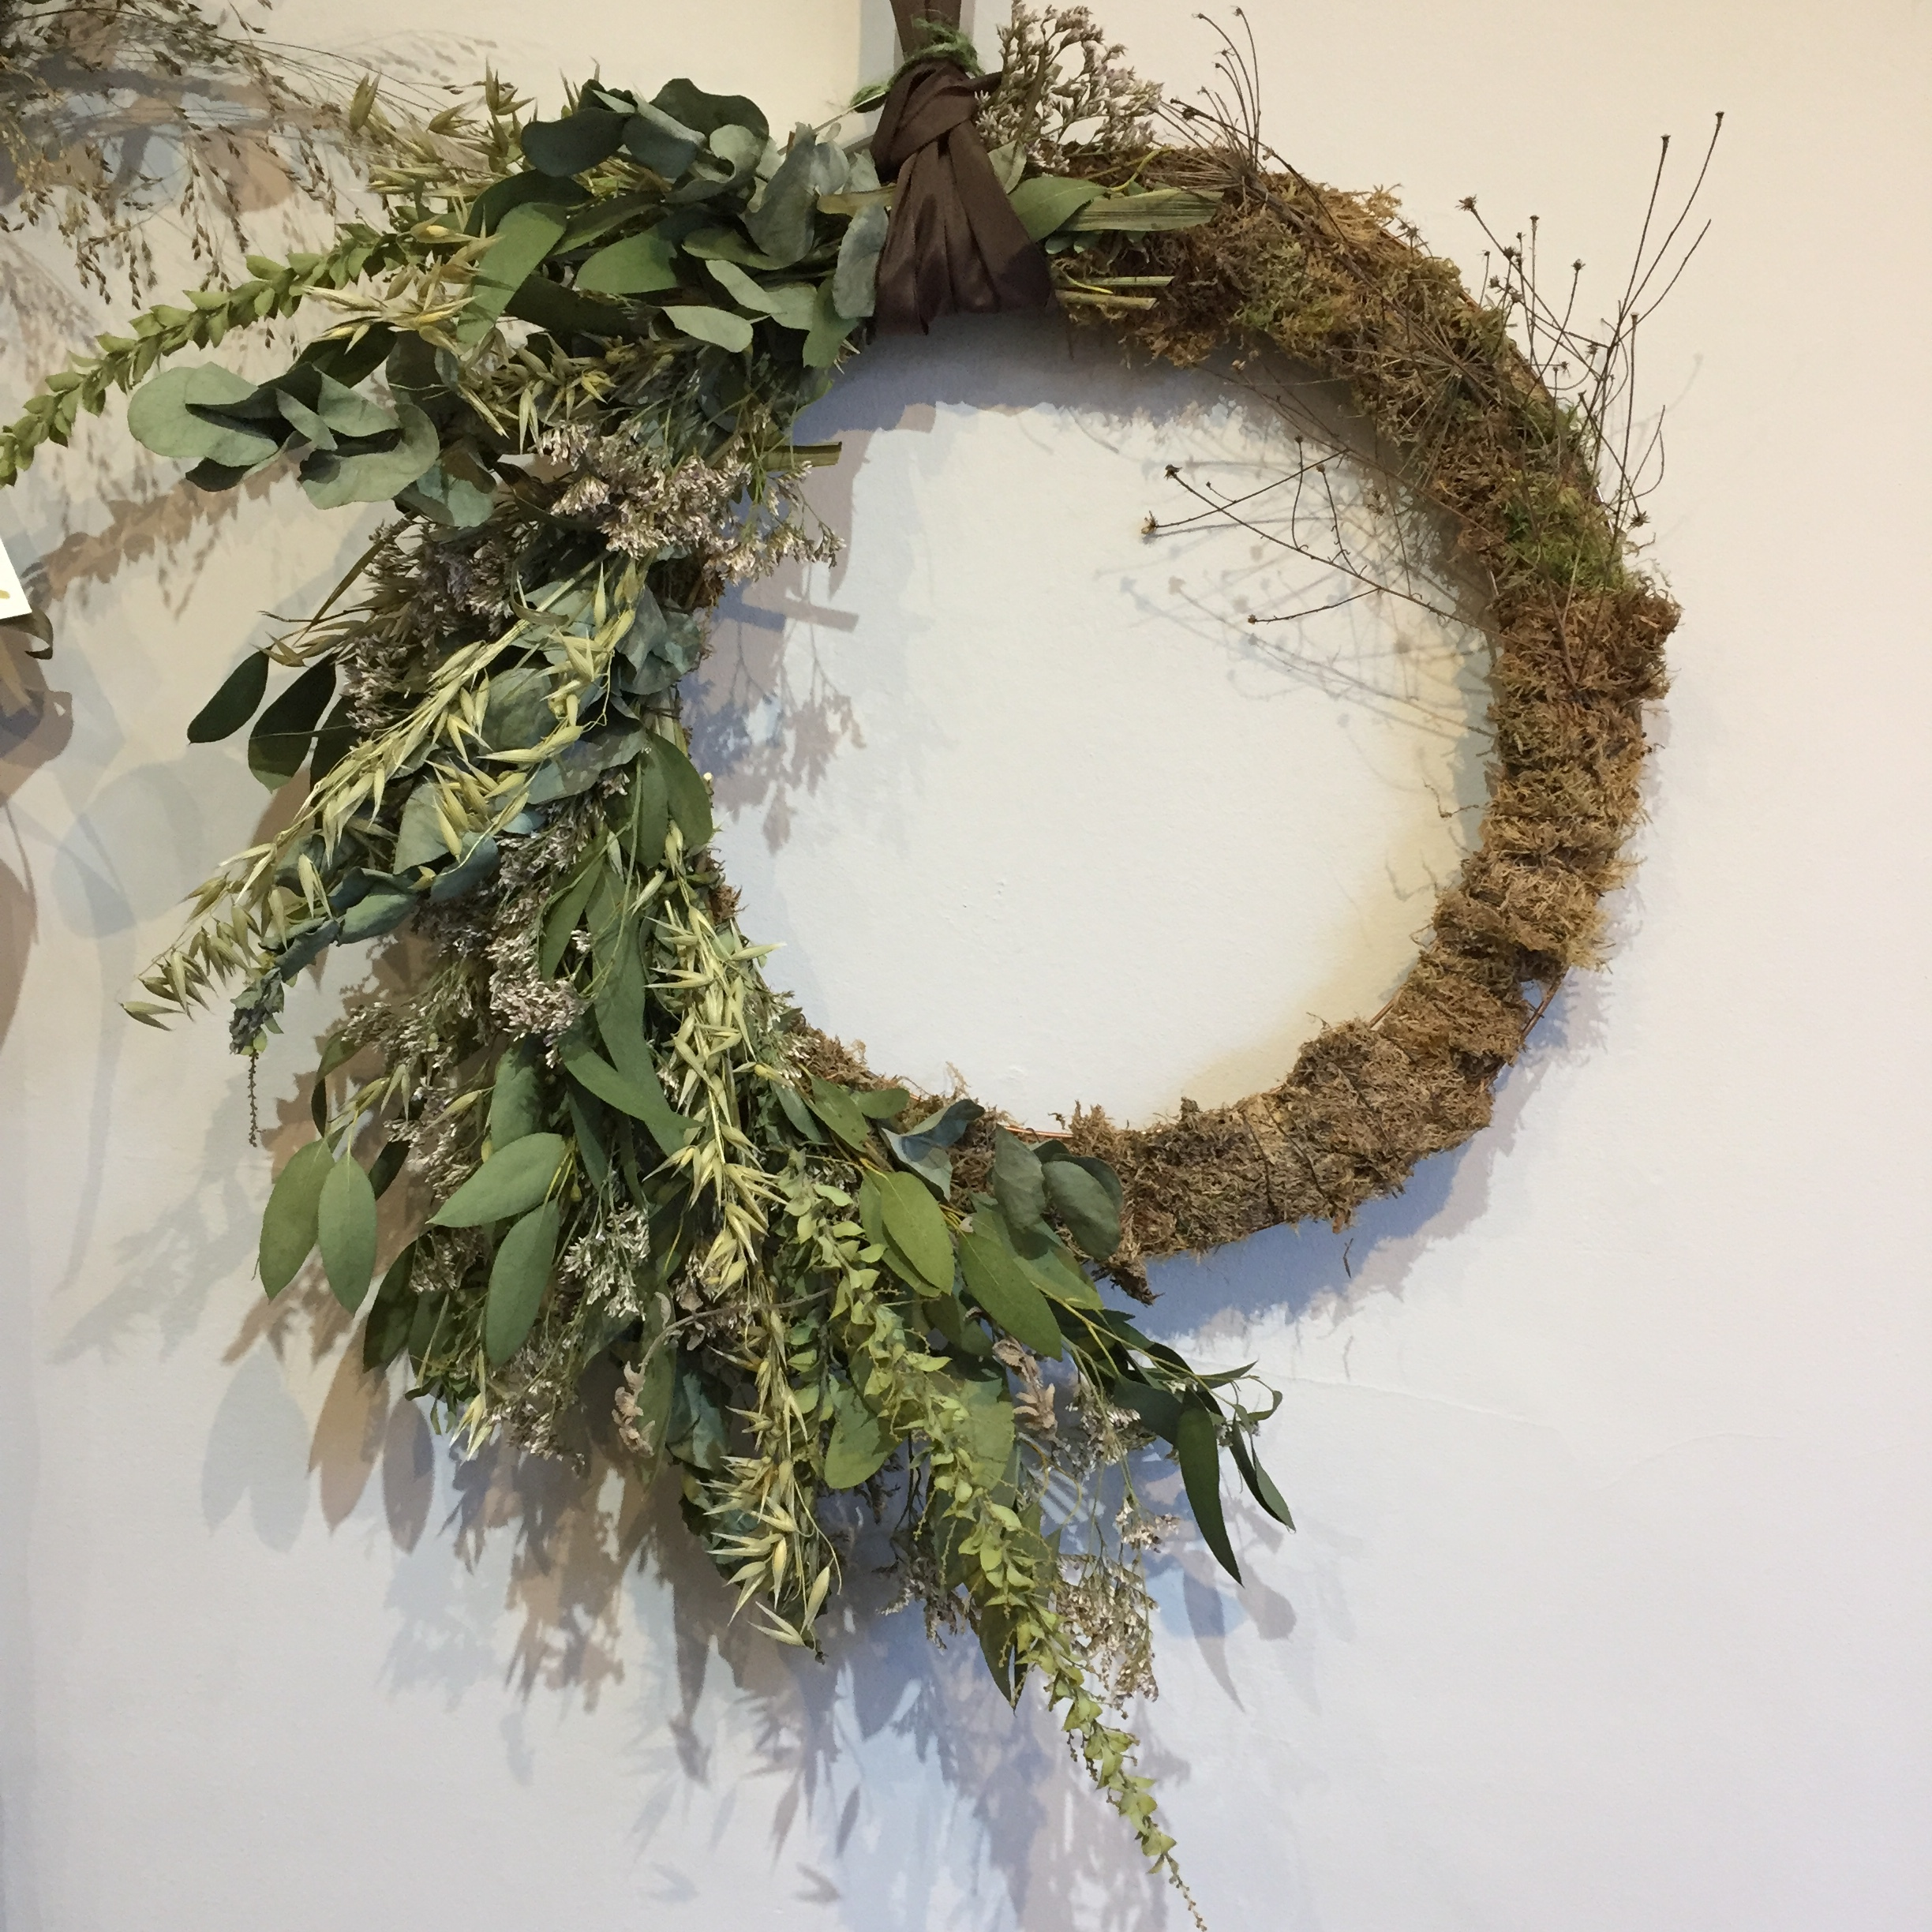 A beautiful Wreath - Wreath by Sophie Millington, they smell divine and this one with all its dried elements would last a good season or two. Available at 14 Castle St Exeter